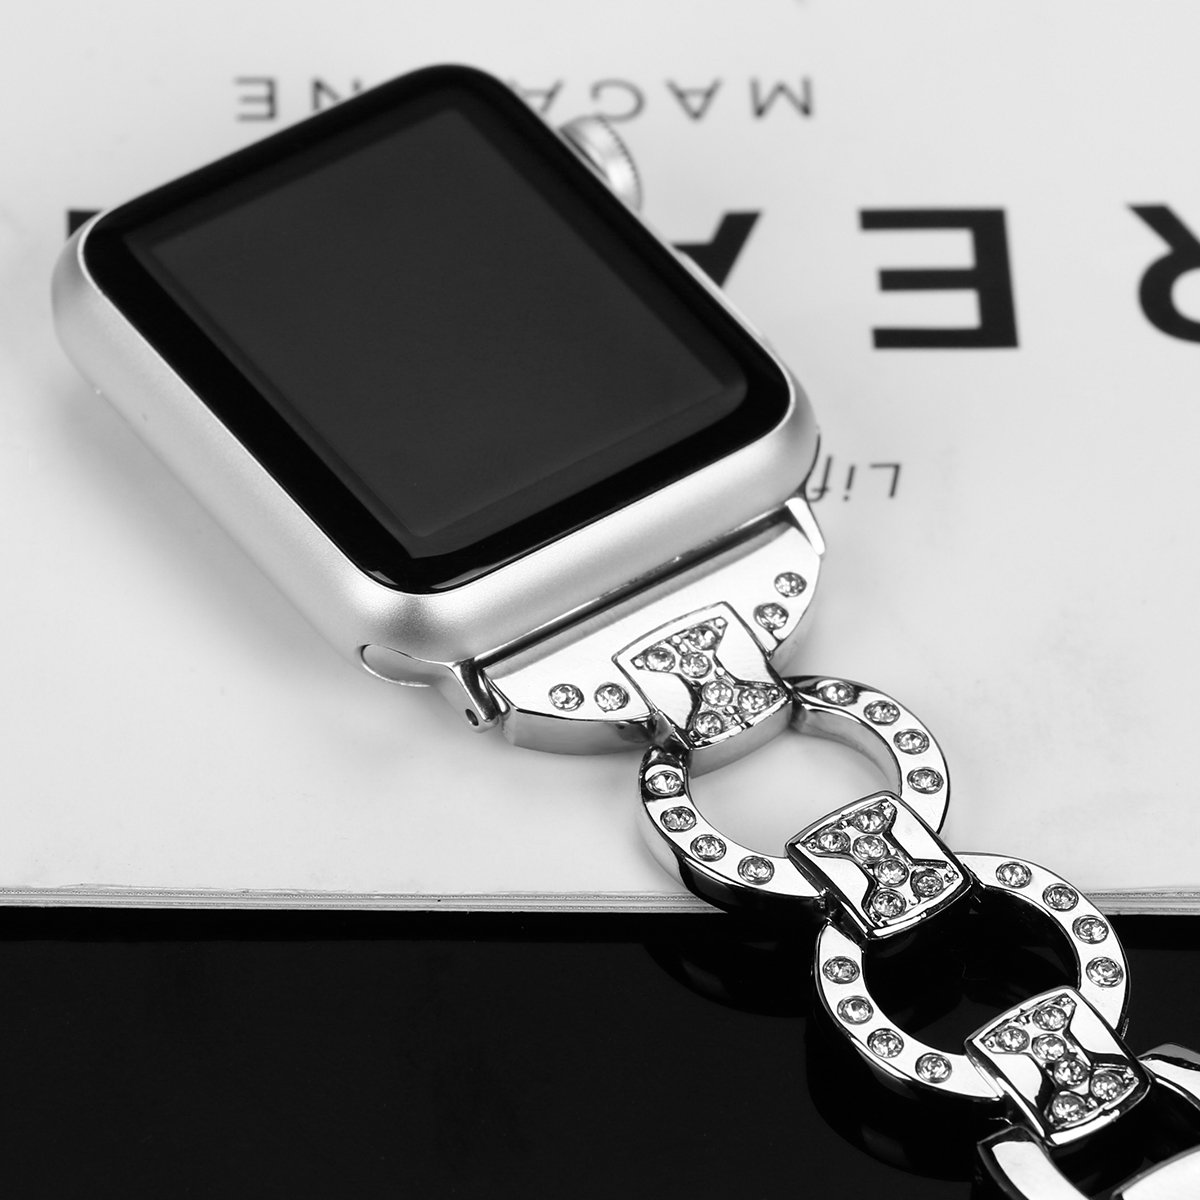 Metal Watch Band for Apple Watch Iwatch Band 42mm Bling Metal Wristband Bracelet for Women Diamond 38mm Apple Watch Band Series 3 2 1 by BONSTRAP (Image #3)